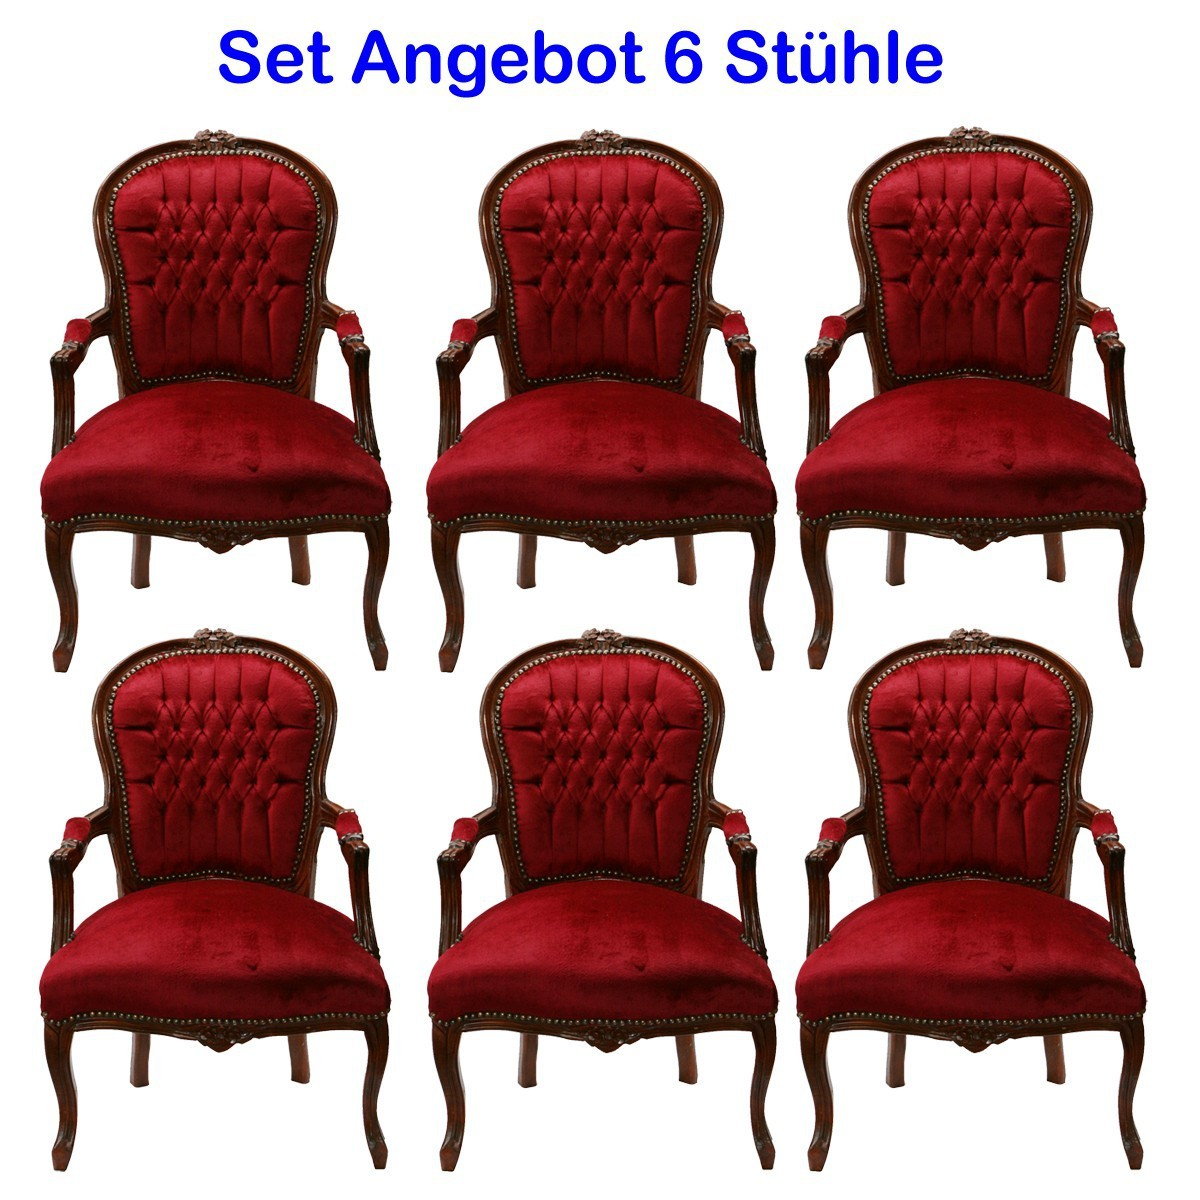 salonstuhl set 6 st hle rot armlehnstuhl barock antik stil mahagoni braun. Black Bedroom Furniture Sets. Home Design Ideas